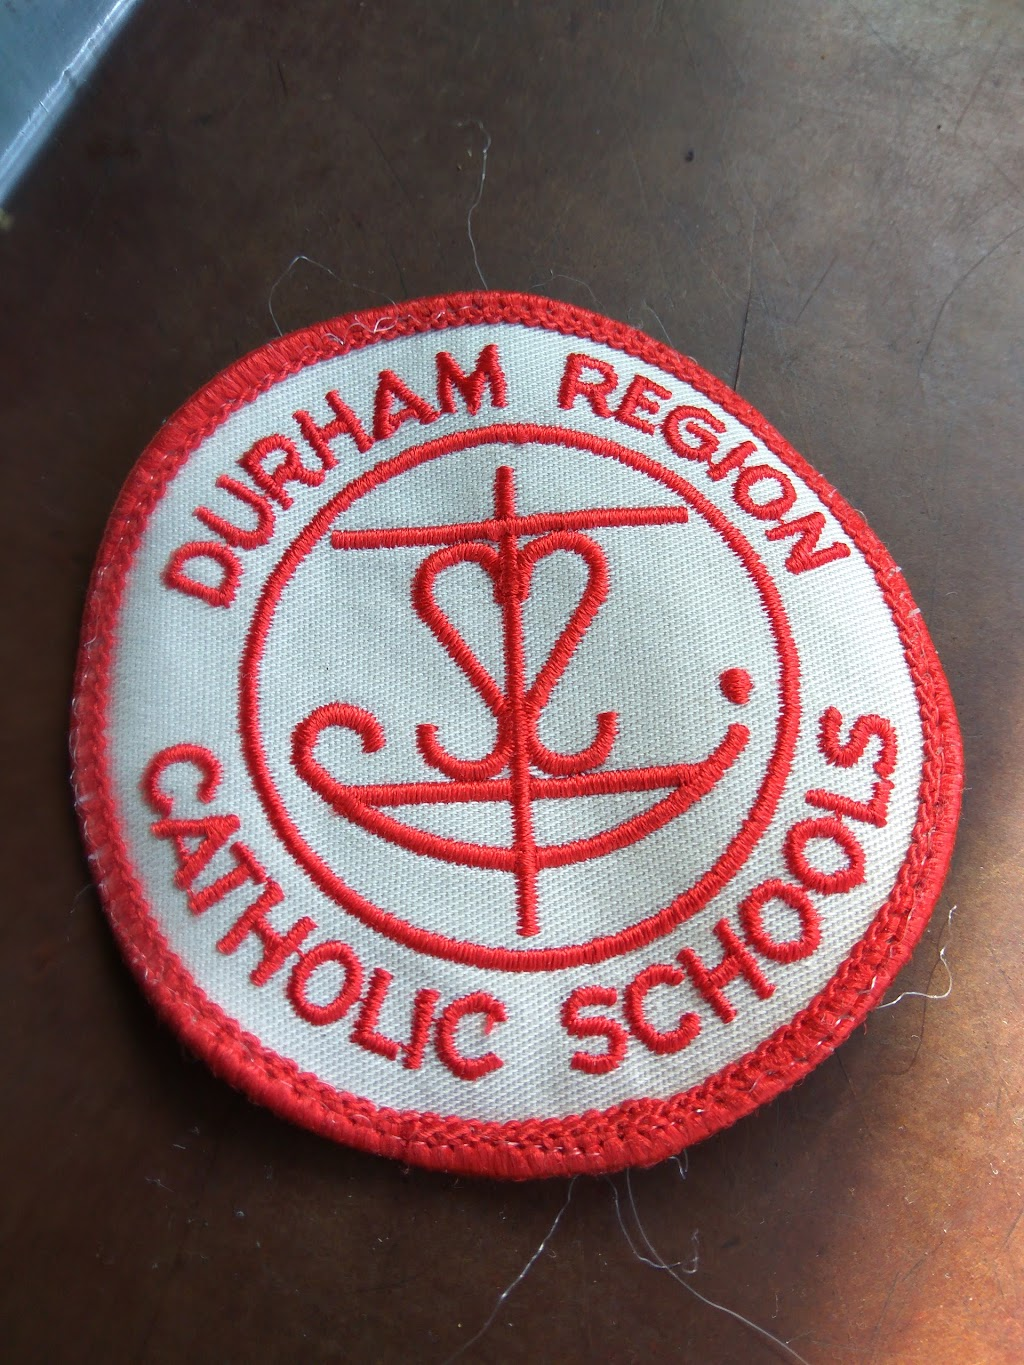 Durham Catholic District School Board | school | 650 Rossland Rd W, Oshawa, ON L1J 7C4, Canada | 9055766150 OR +1 905-576-6150